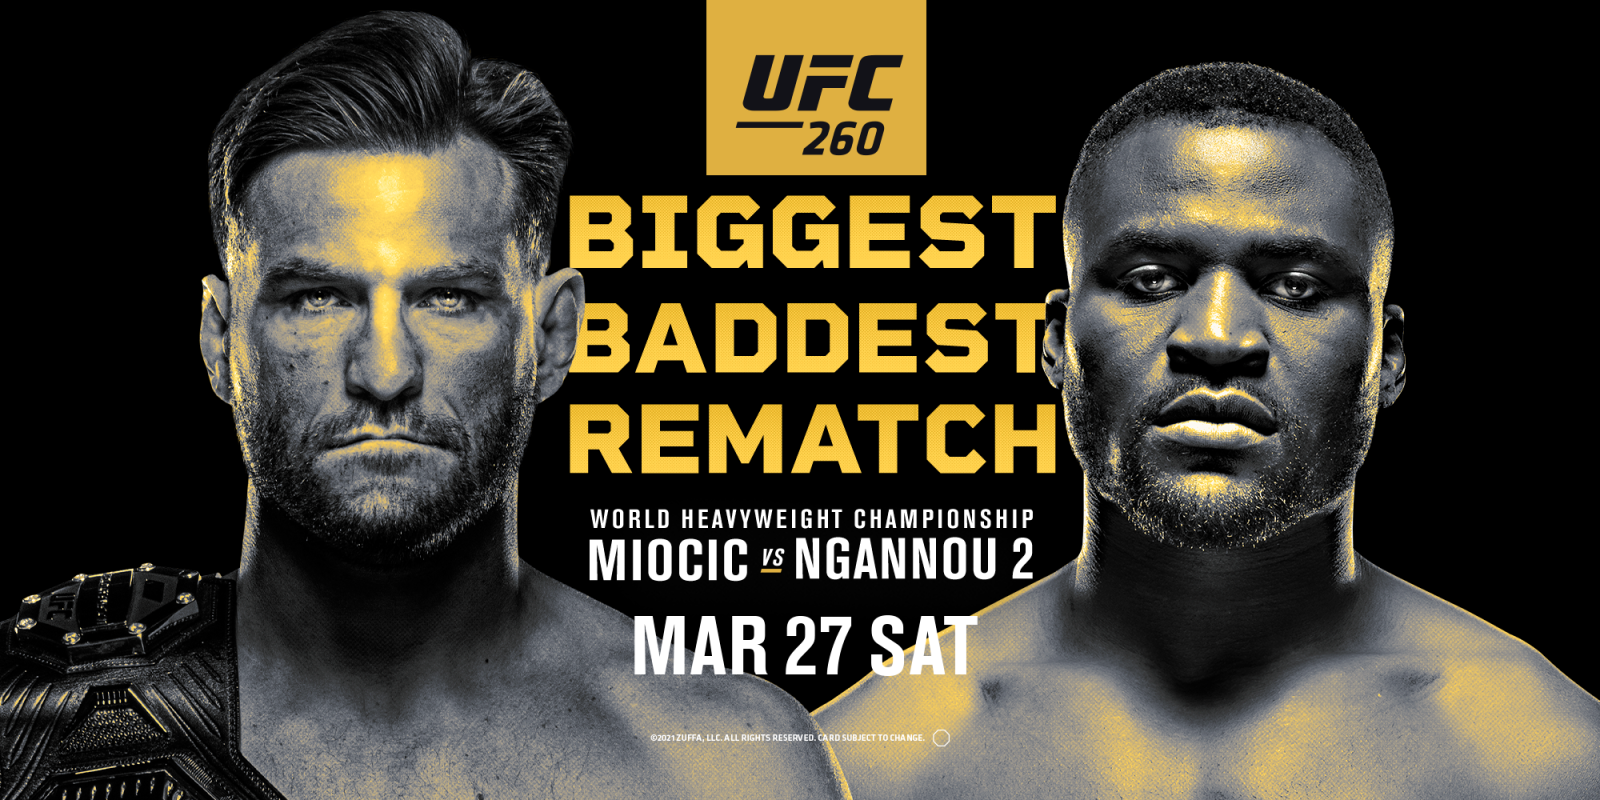 UFC Miocic vs Ngannou 2 Fight Promotion IG Story, Square, & Hero/YT Image